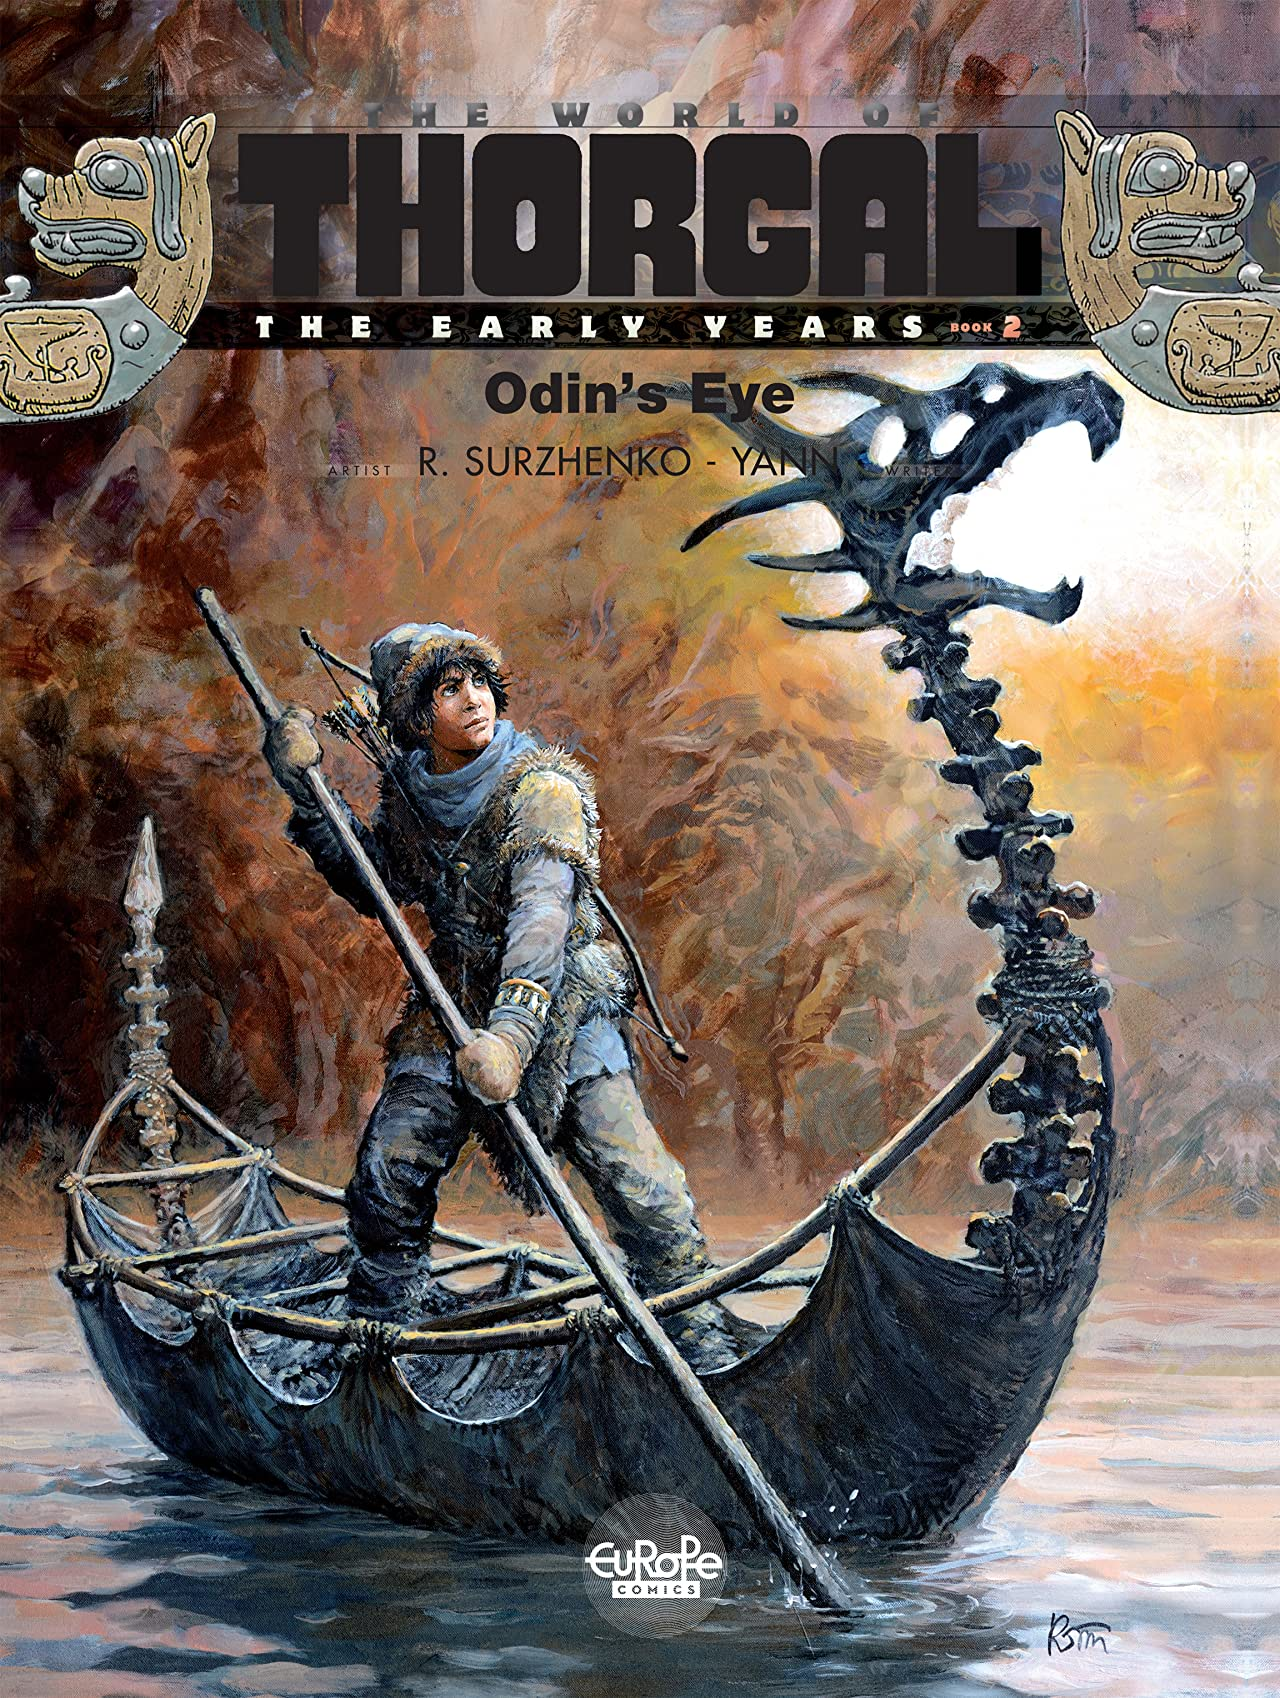 The Young Thorgal Vol. 2: Odin's Eye